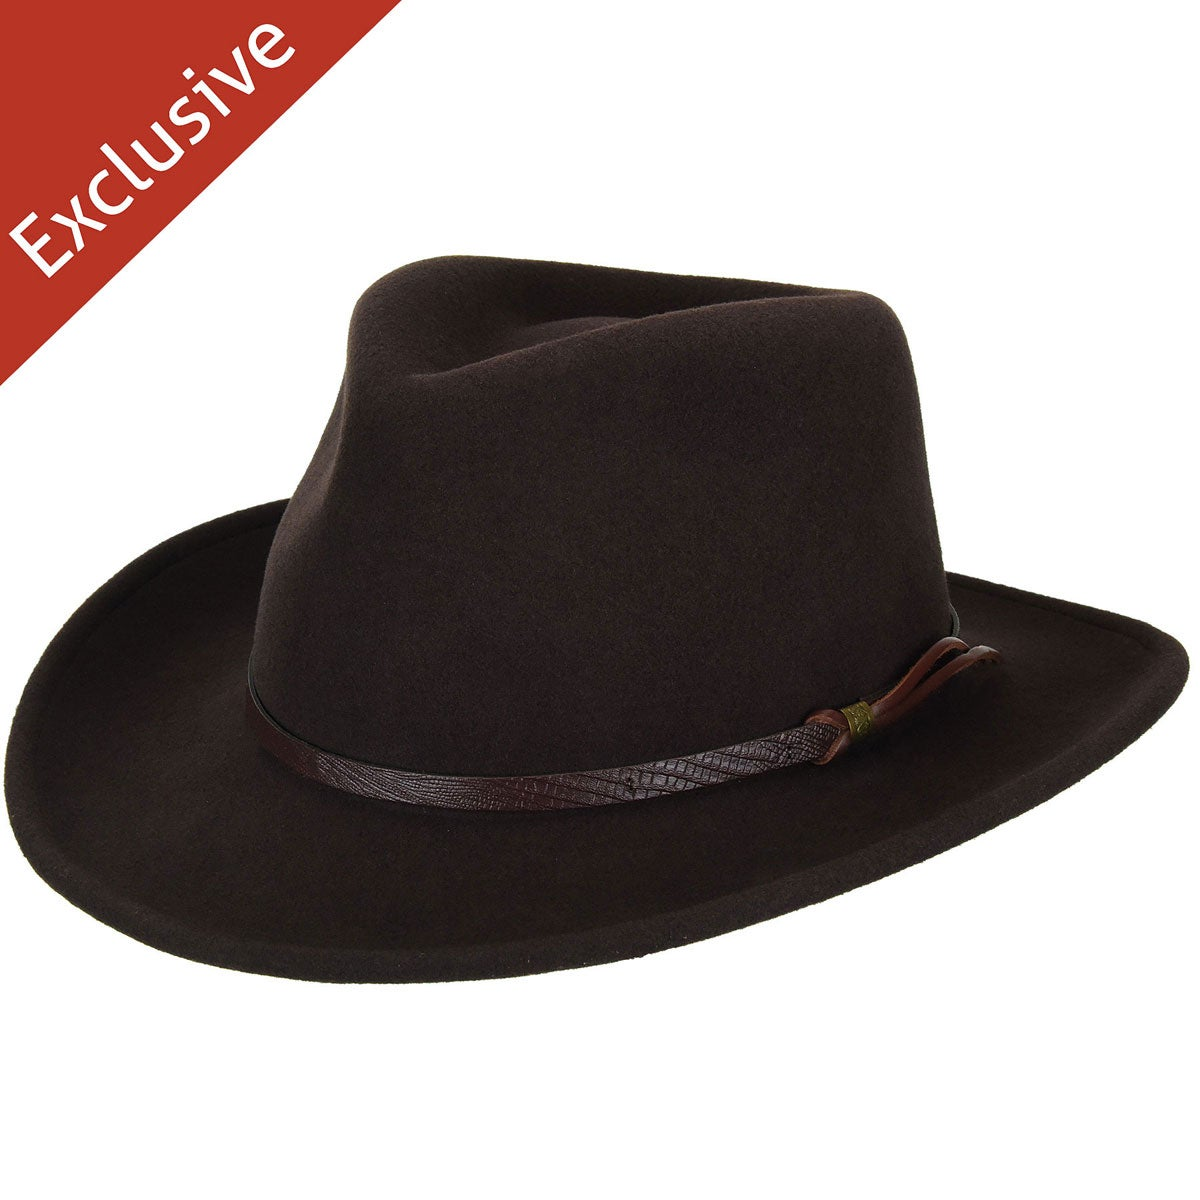 Hats.com Gallivanter Outback Hat - Exclusive in Brown